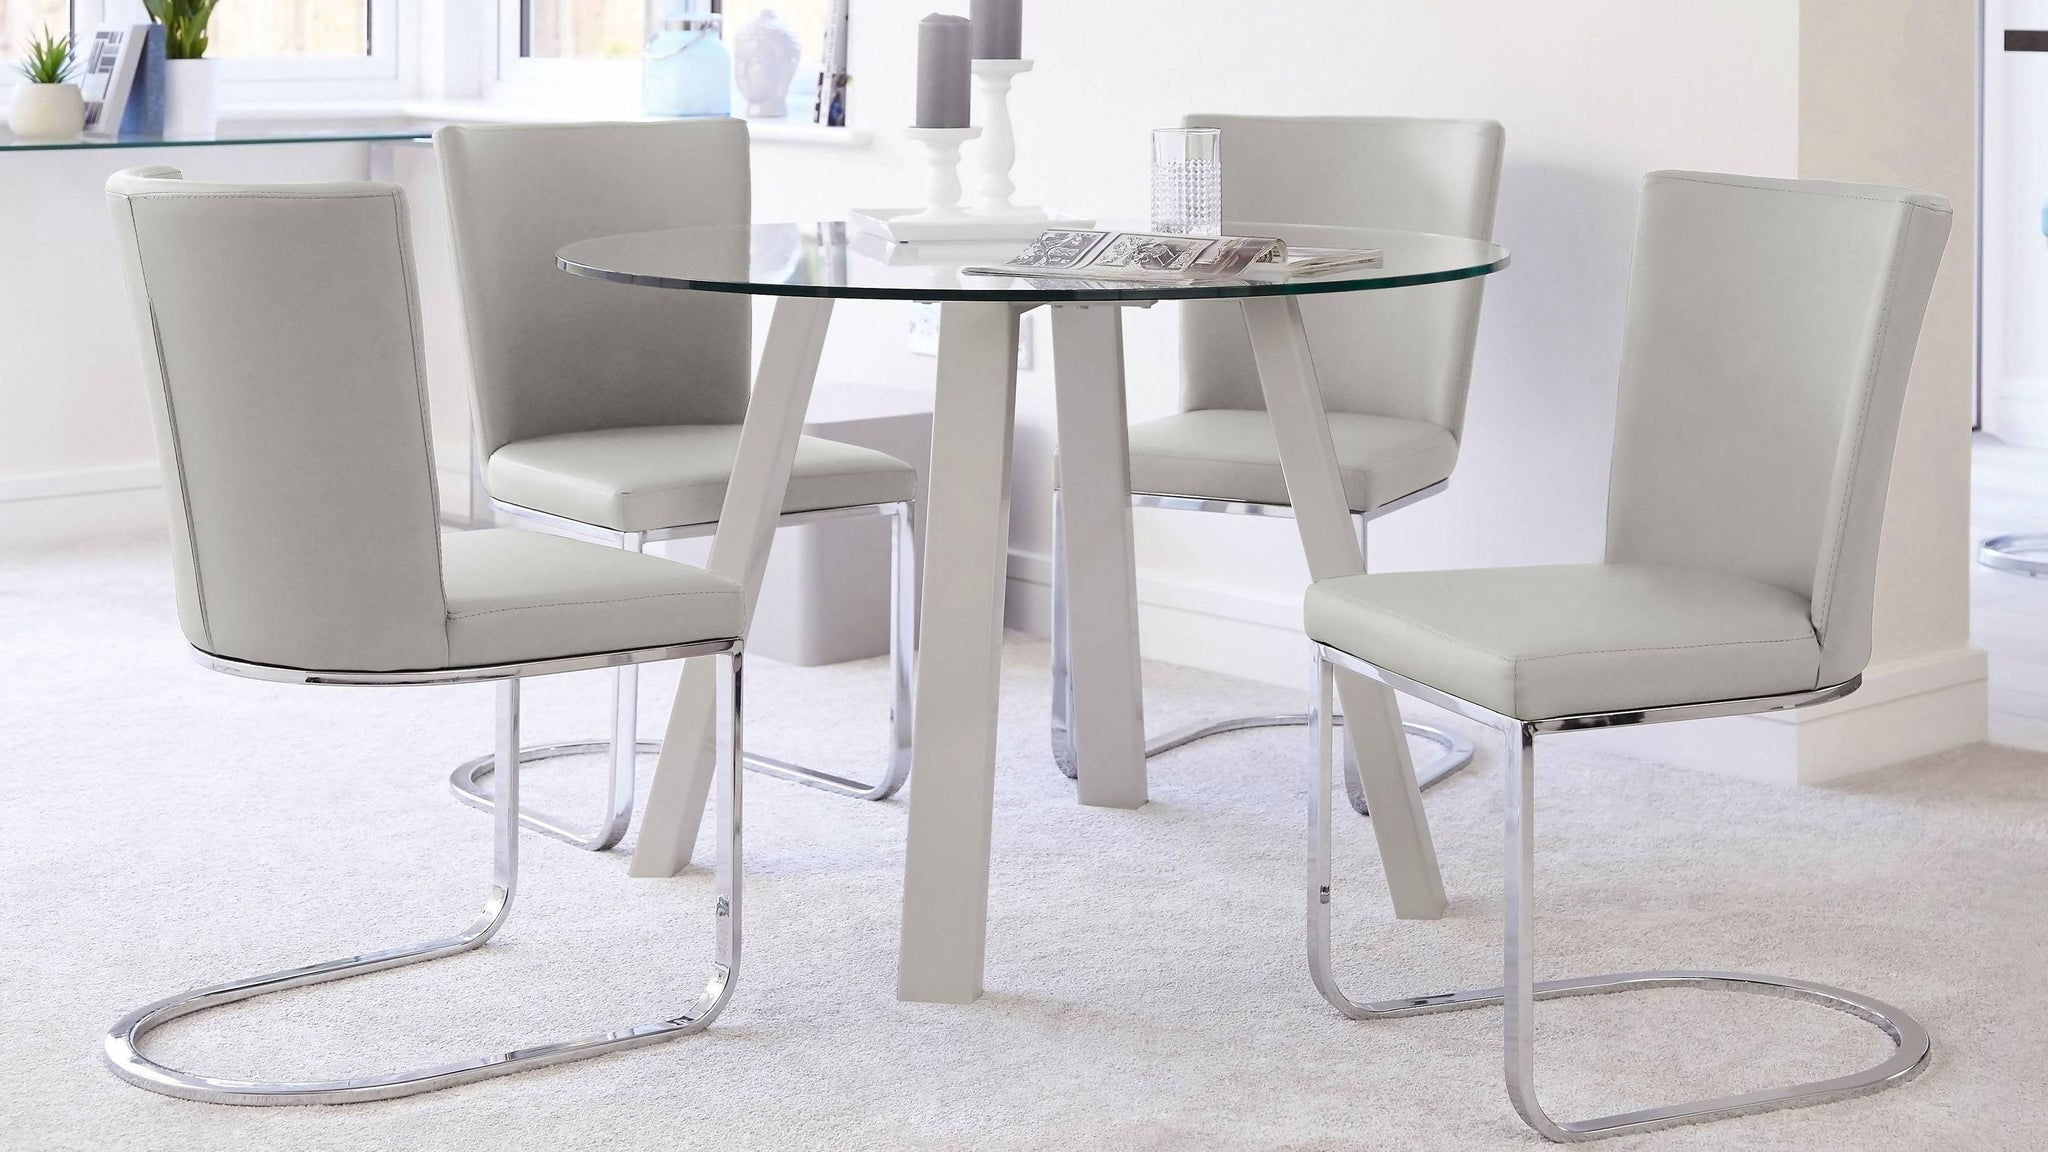 Cool grey dining set